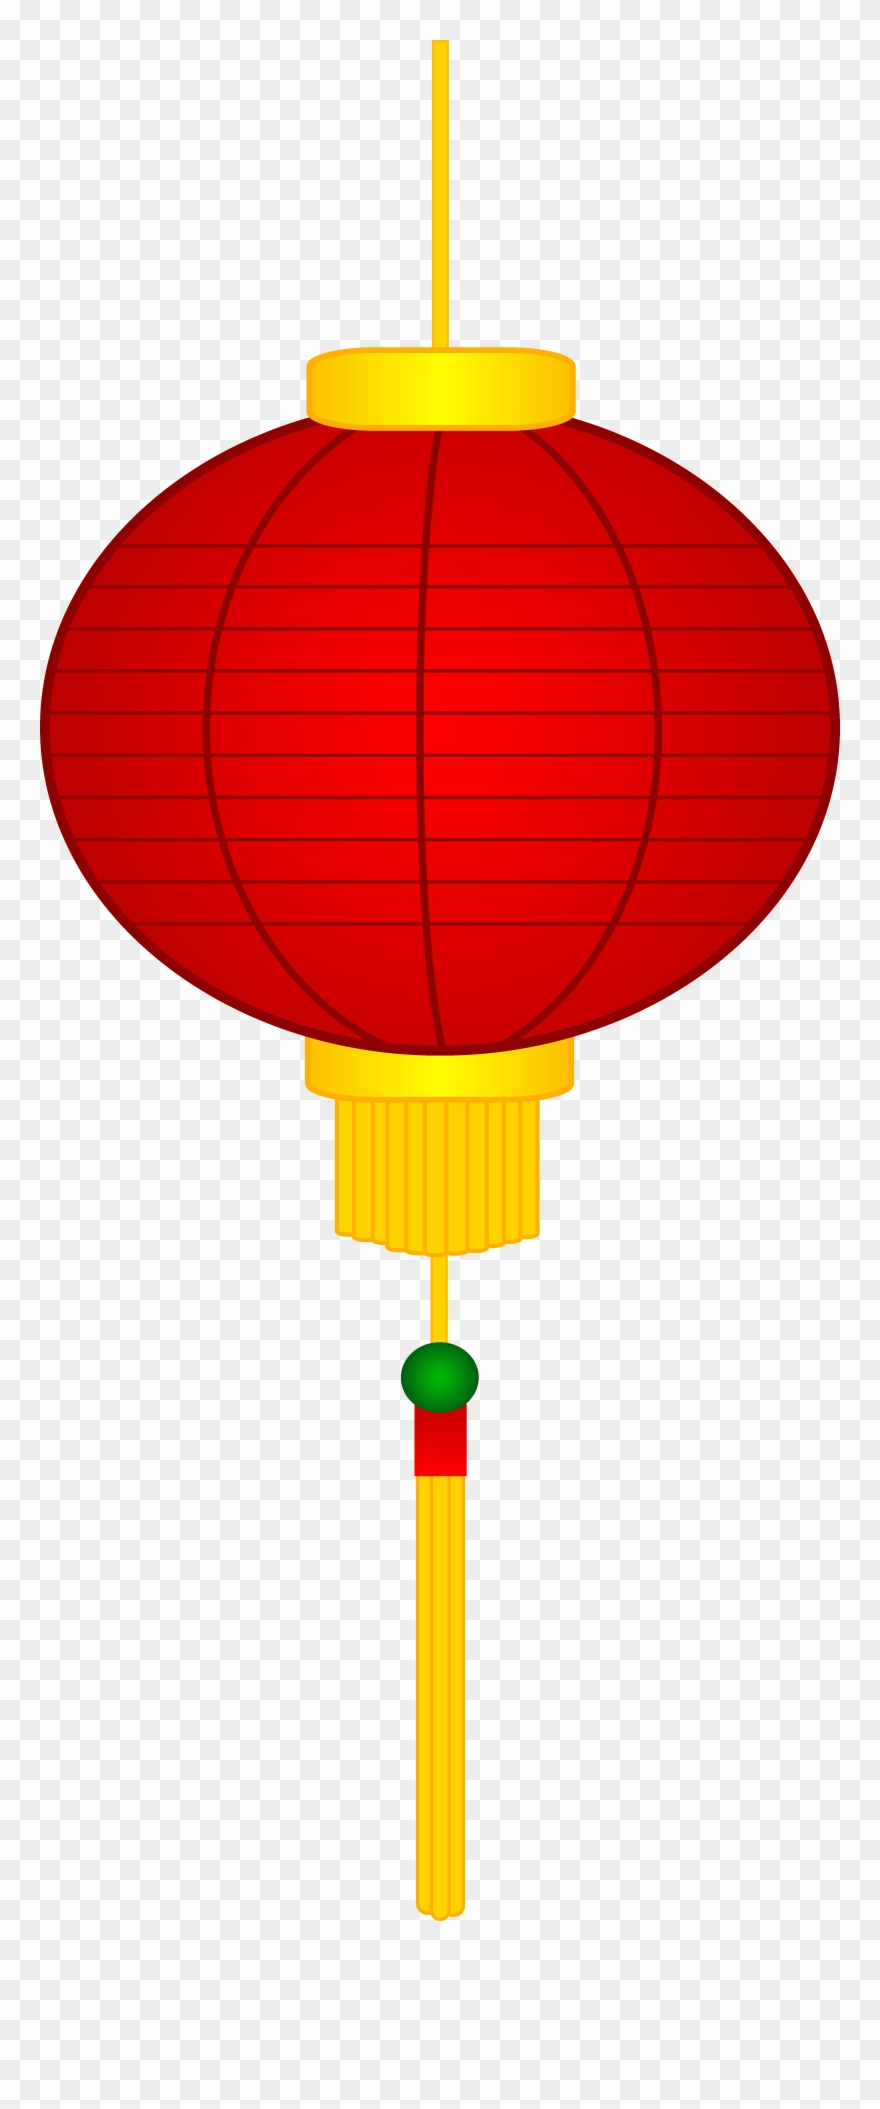 Free 2018 chinese new year latern clipart graphic transparent Clip Art Chinese - Chinese New Year Lantern Clipart - Png Download ... graphic transparent